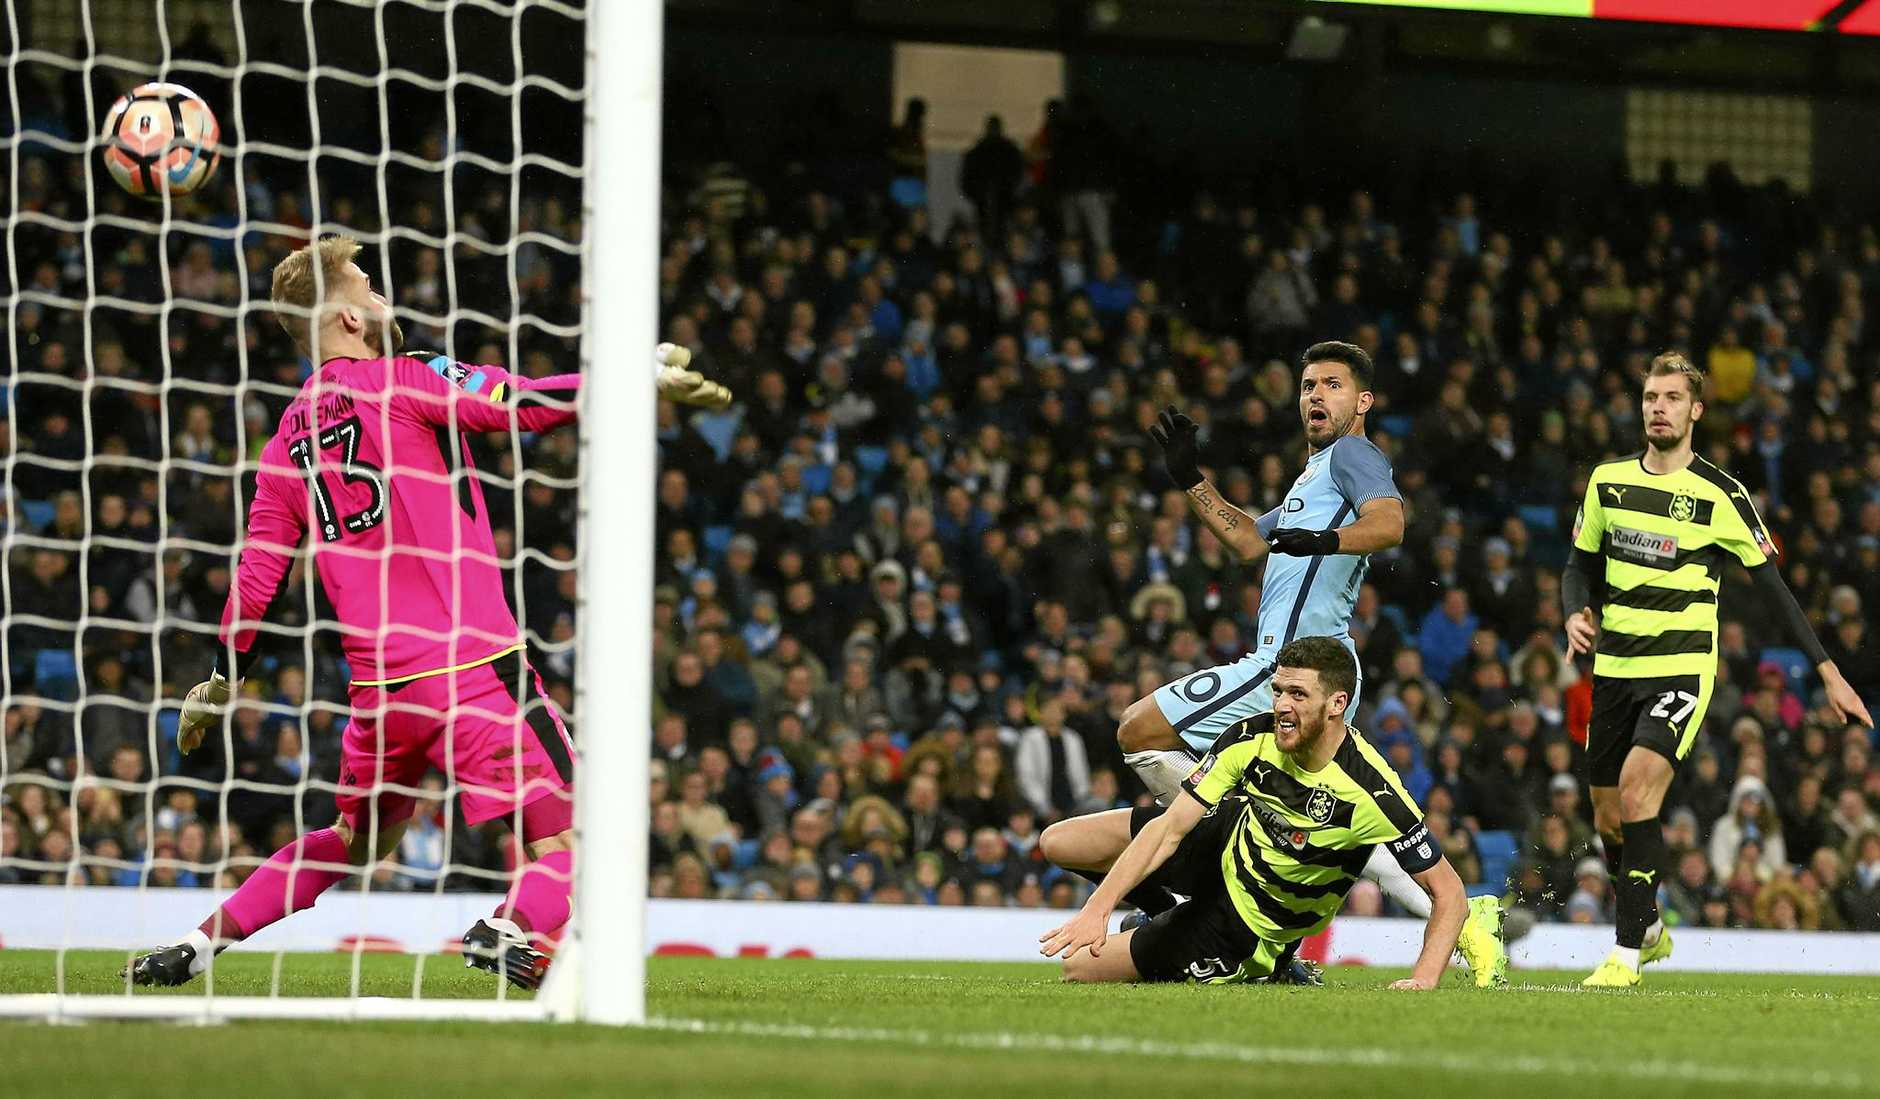 Manchester City's Sergio Aguero scores his side's fourth goal in the FA Cup win over Huddersfield.